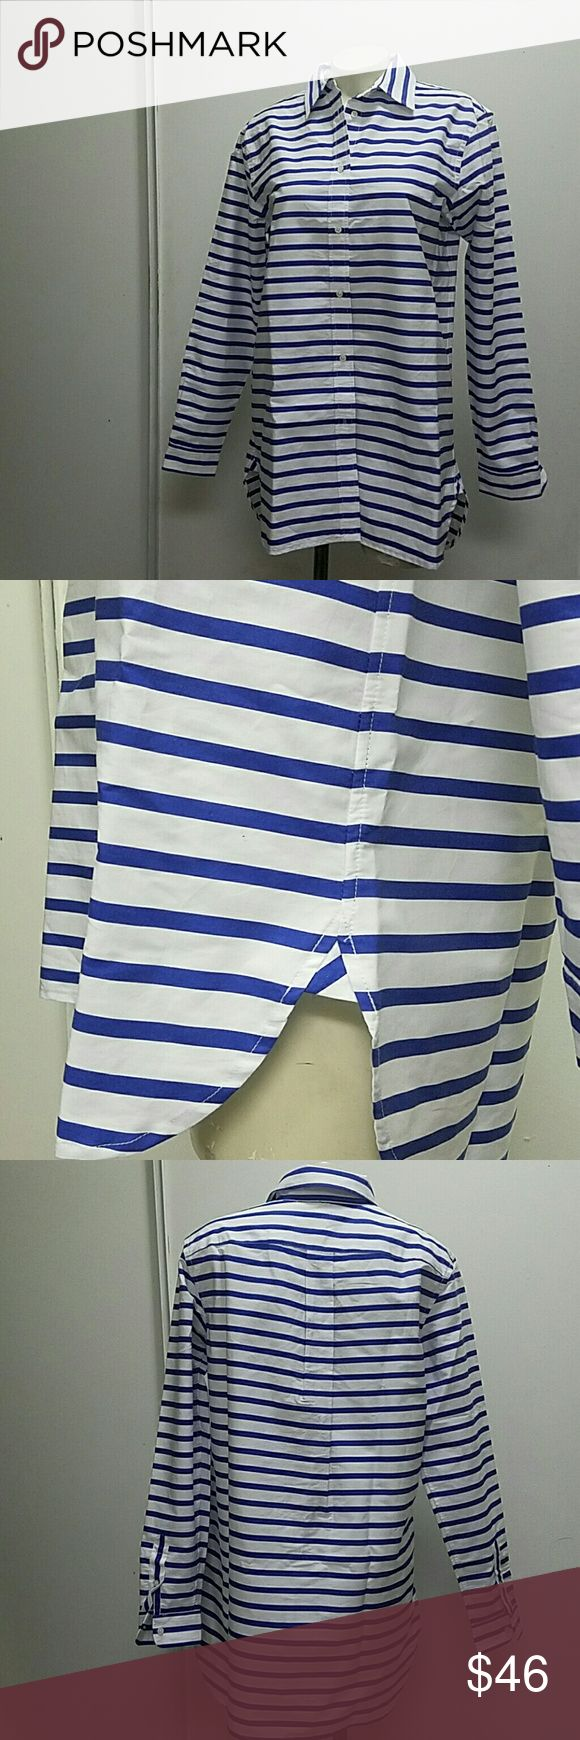 Ralp Lauren top Ralph Lauren buttoned shirt. White with blue stripes. Size medium in womens. New with tag. Ralph Lauren Tops Blouses